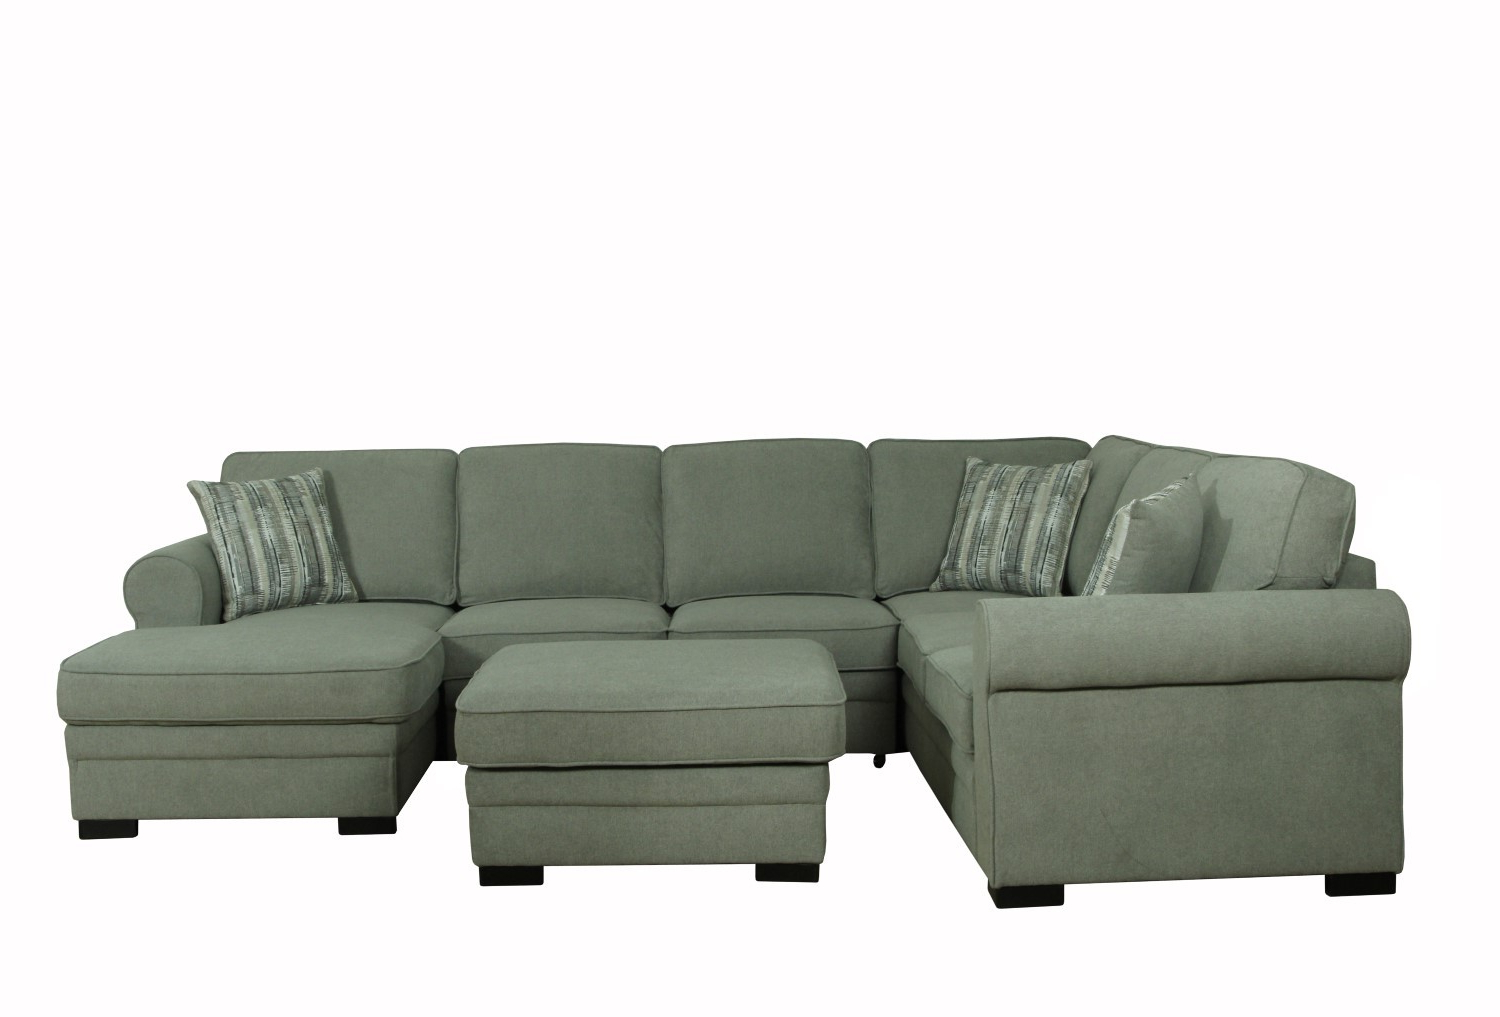 Abigail Ii Sofa Chairs Regarding Most Up To Date Abigail Sectional (View 5 of 20)